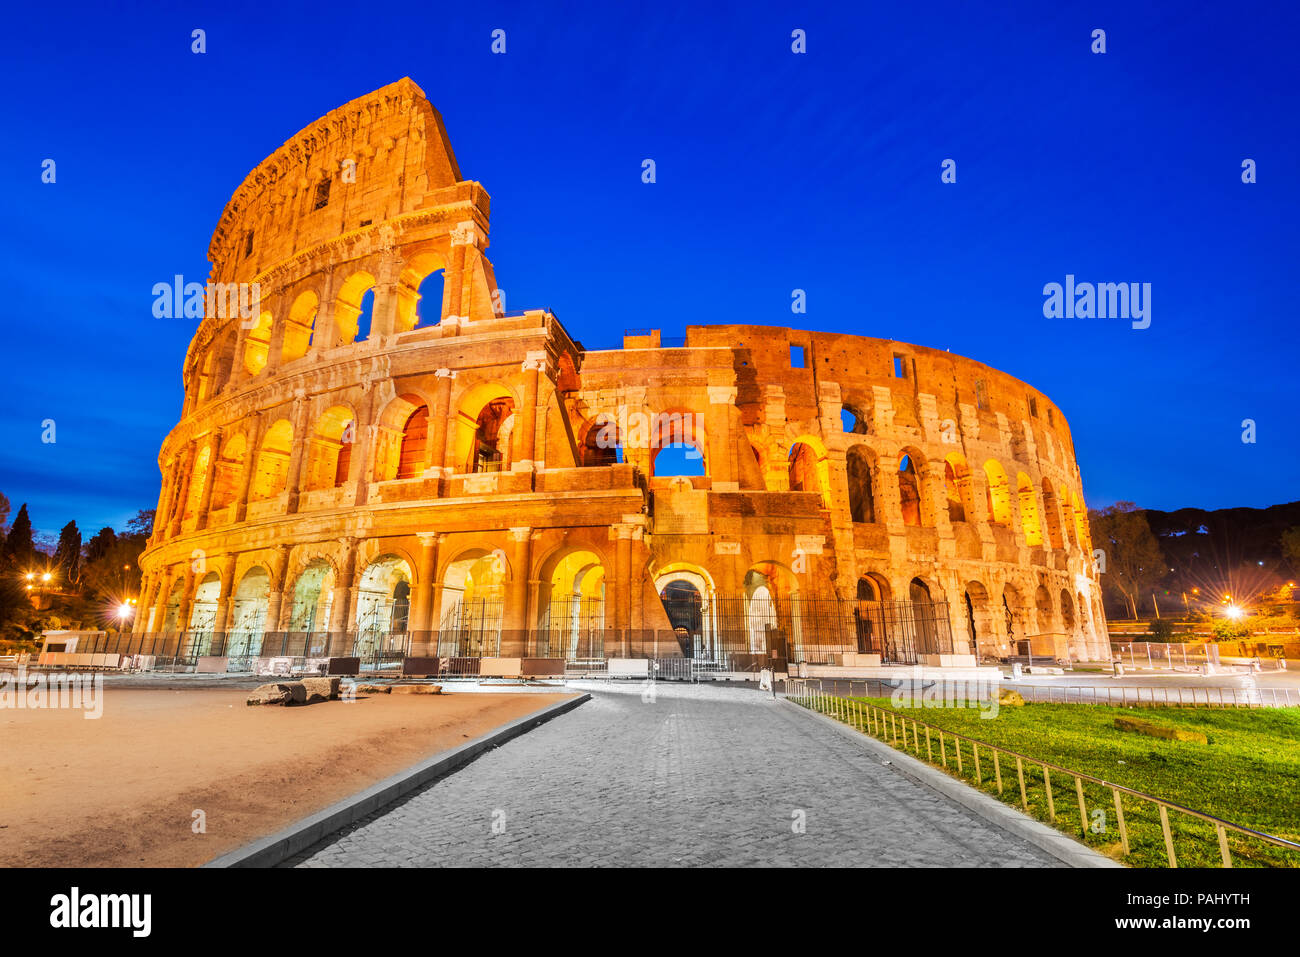 Rome, Italy. Colosseum, Coliseum or Coloseo,  Flavian Amphitheatre largest ever built symbol of ancient Roma city in Roman Empire. - Stock Image